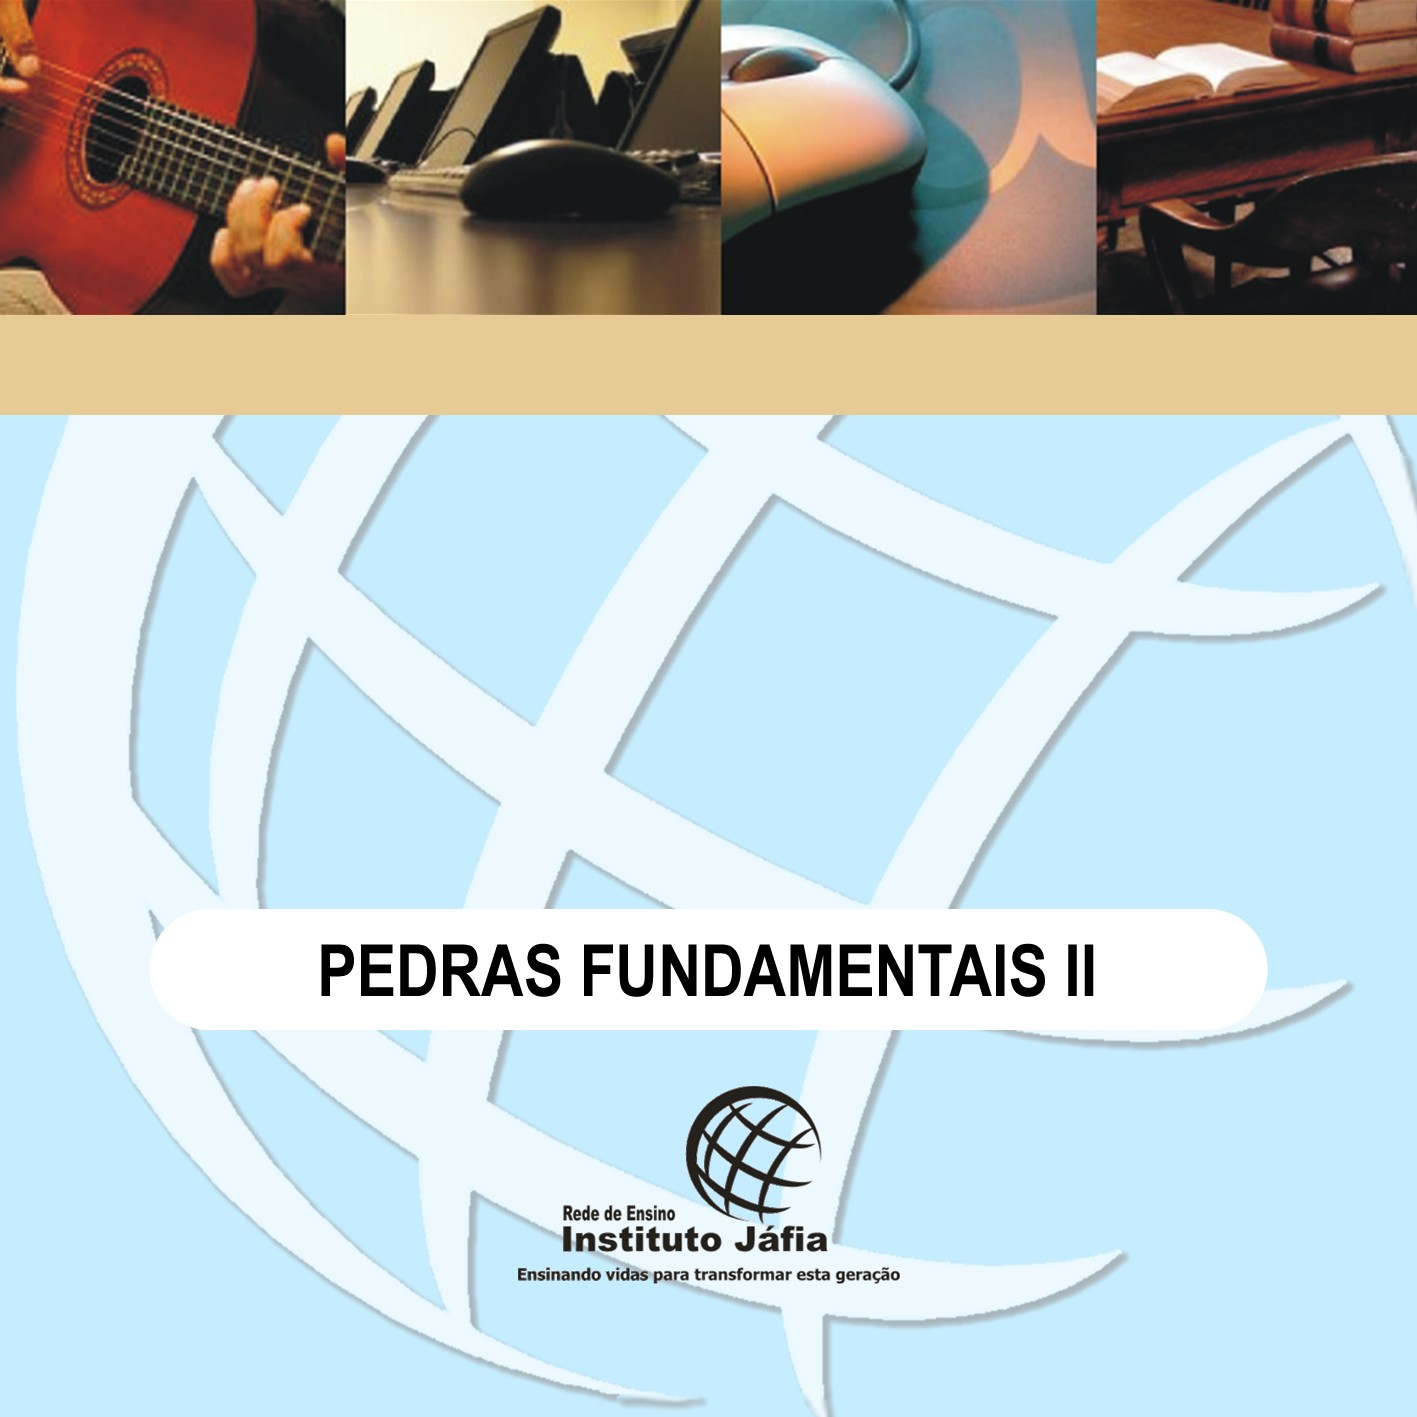 Pedras Fundamentais II